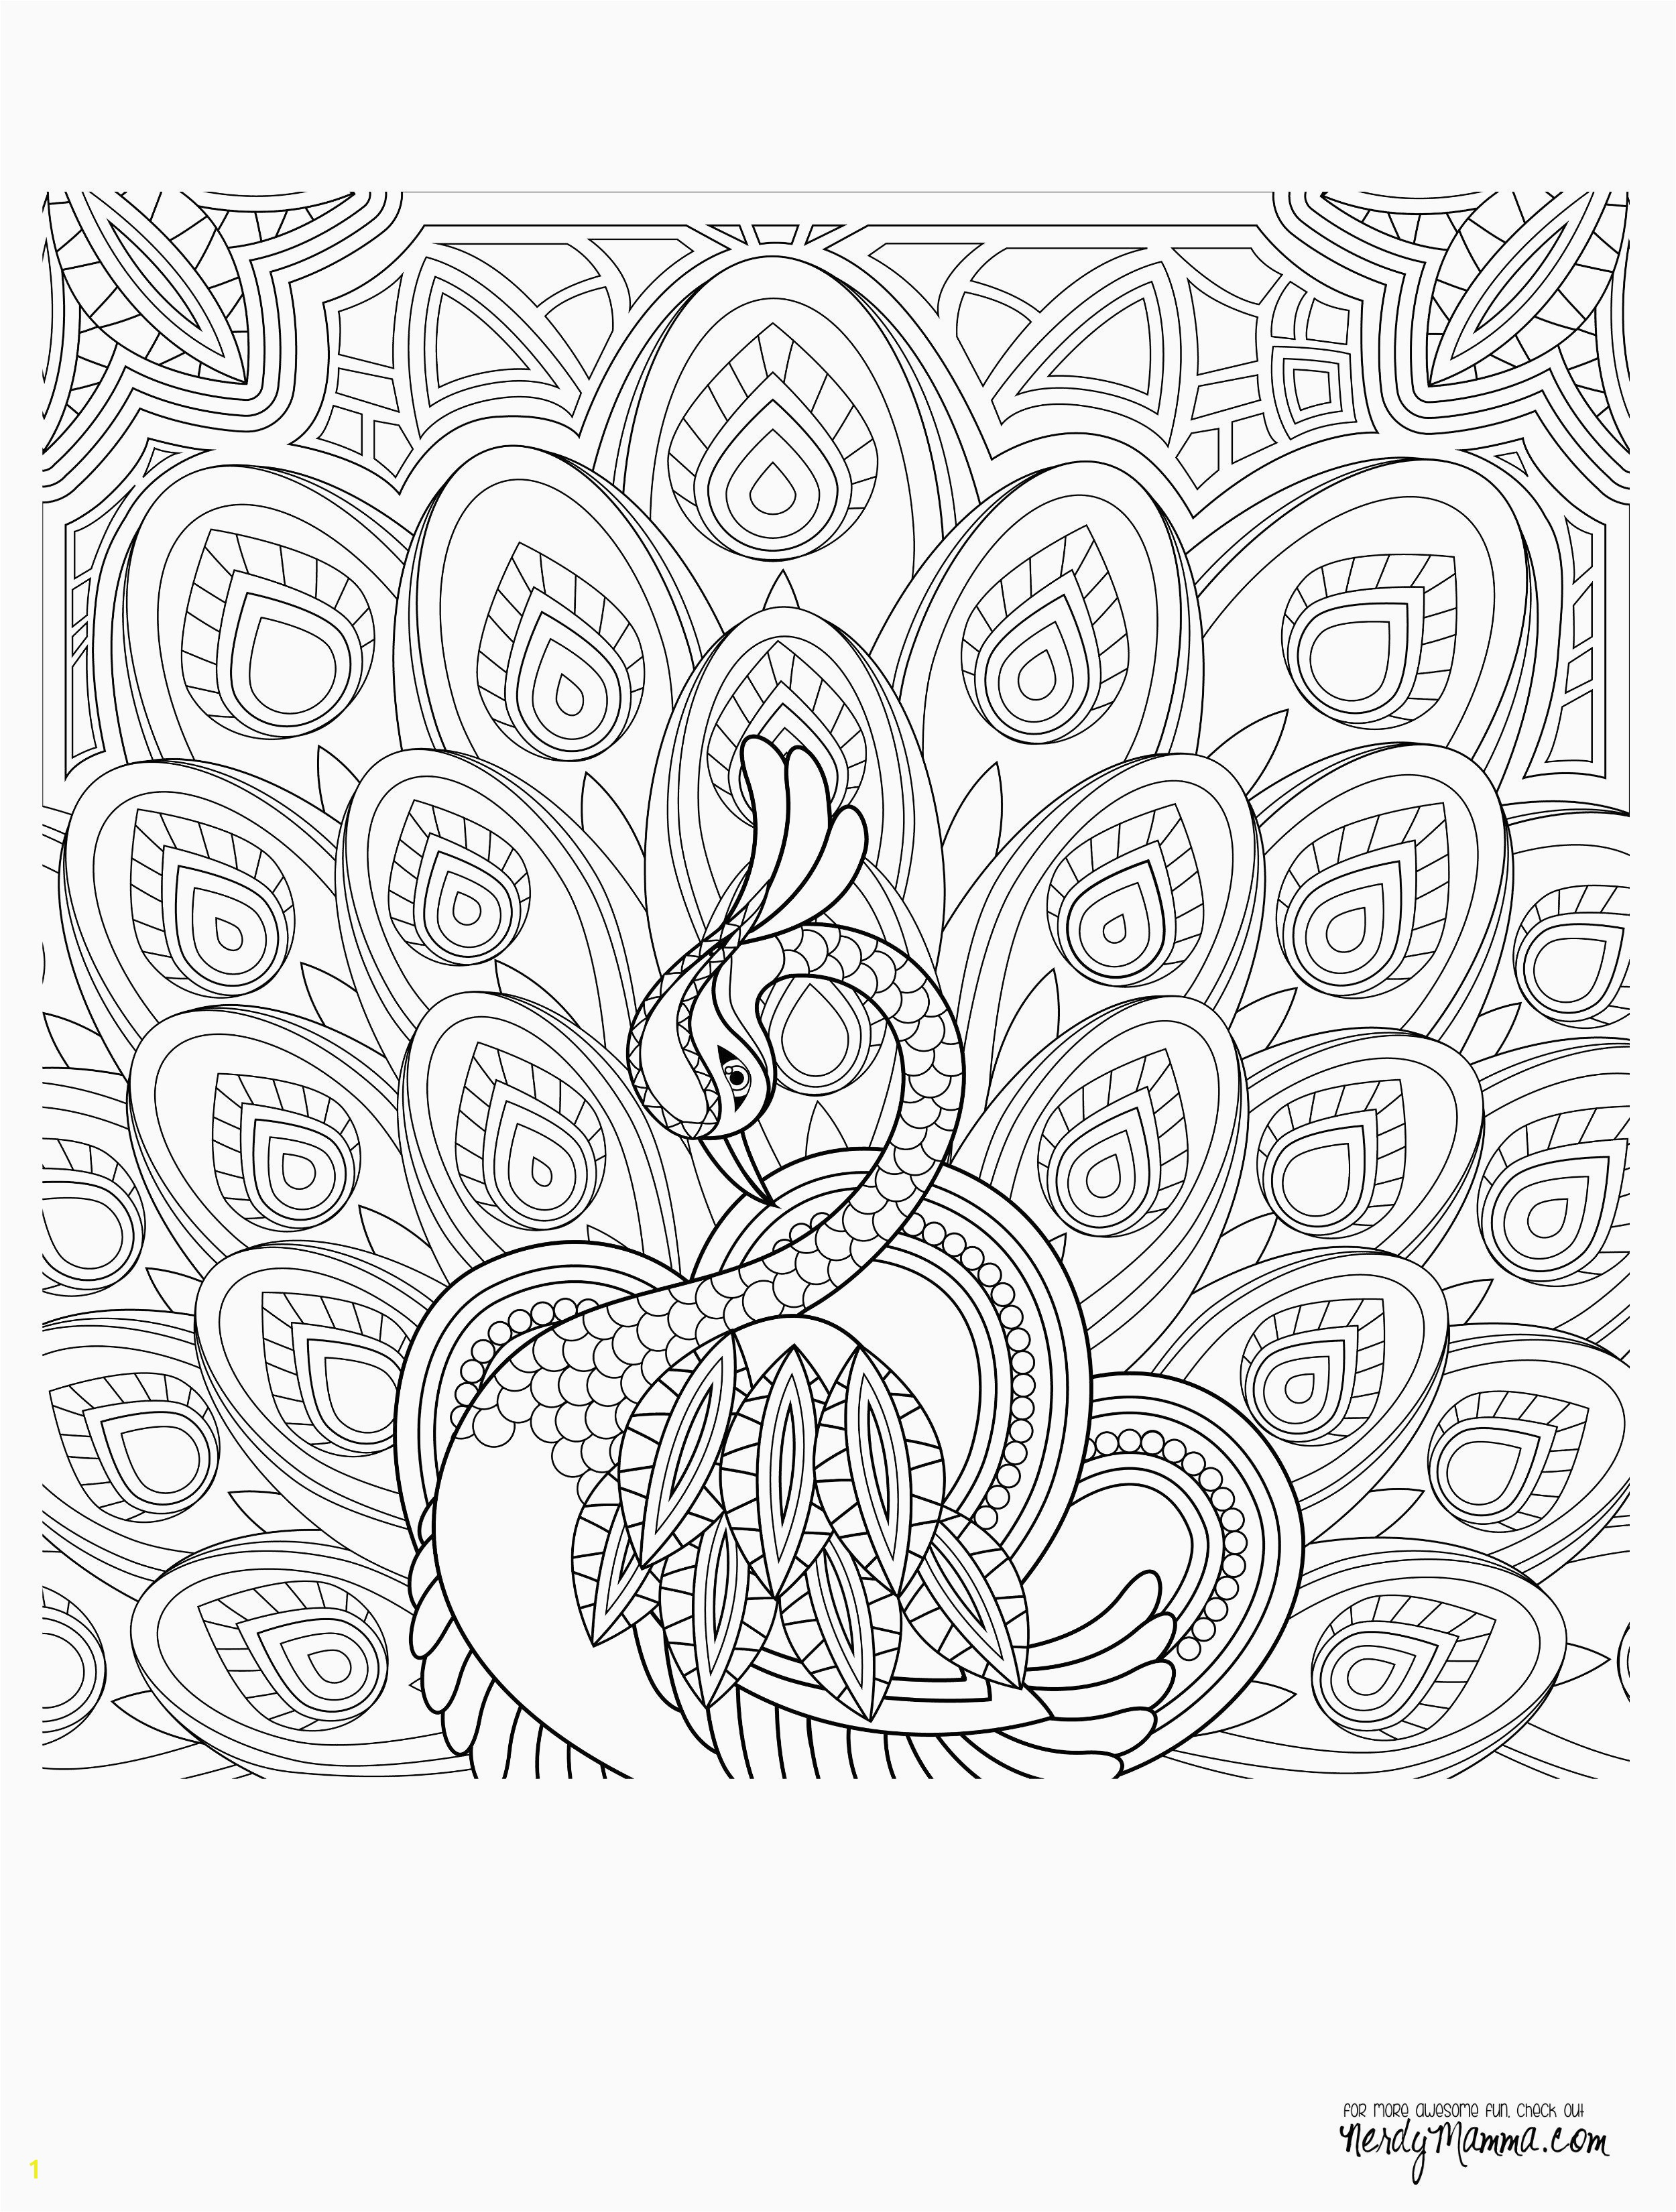 Free Printable Flower Coloring Pages for Adults New Awesome Coloring Page for Adult Od Kids Simple